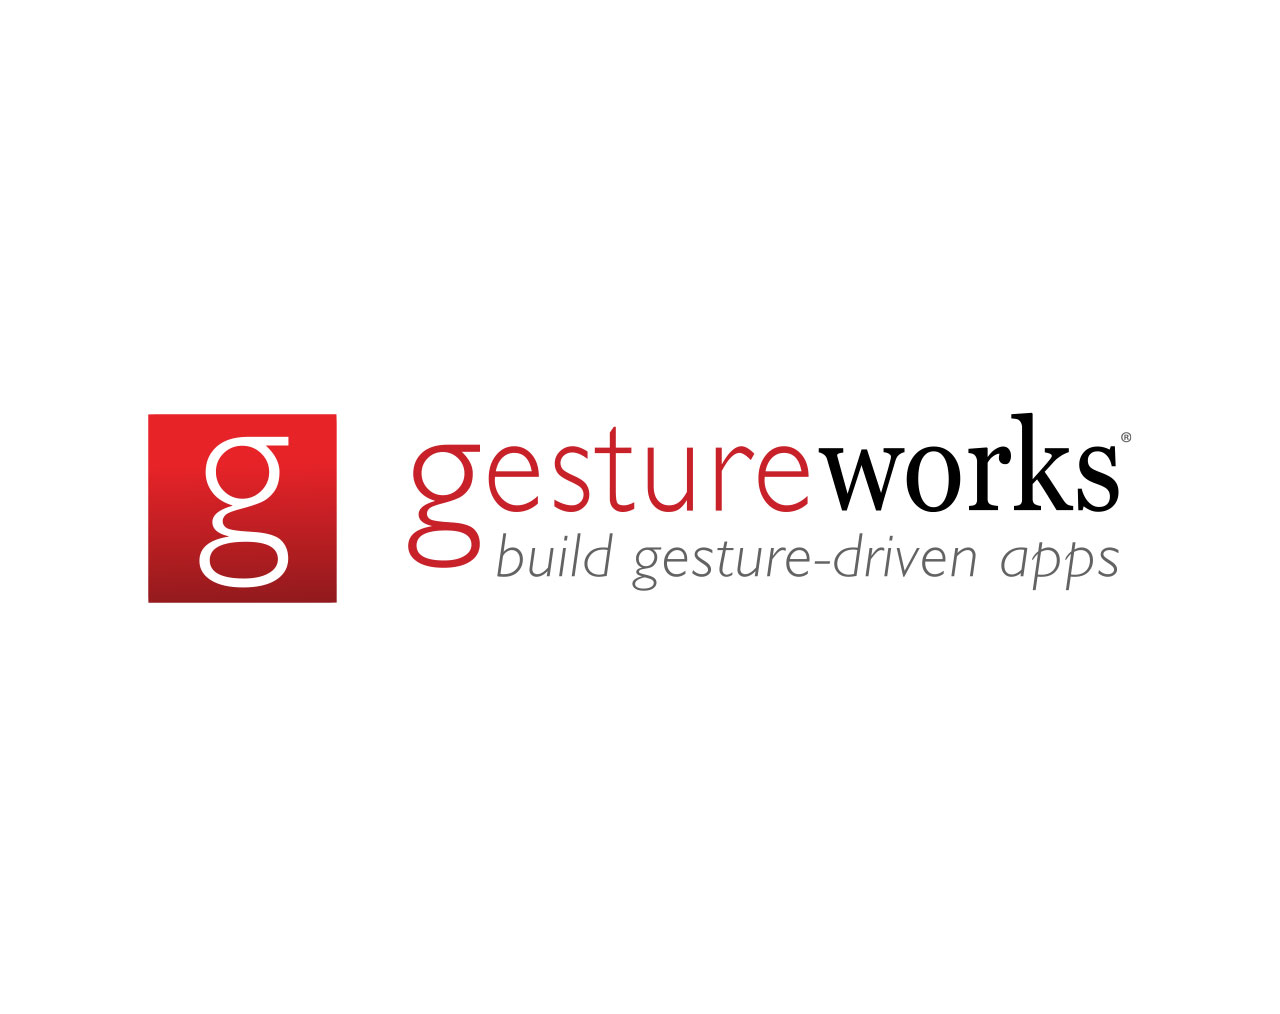 Multitouch Google Maps Tutorial Up on GestureWorks Site